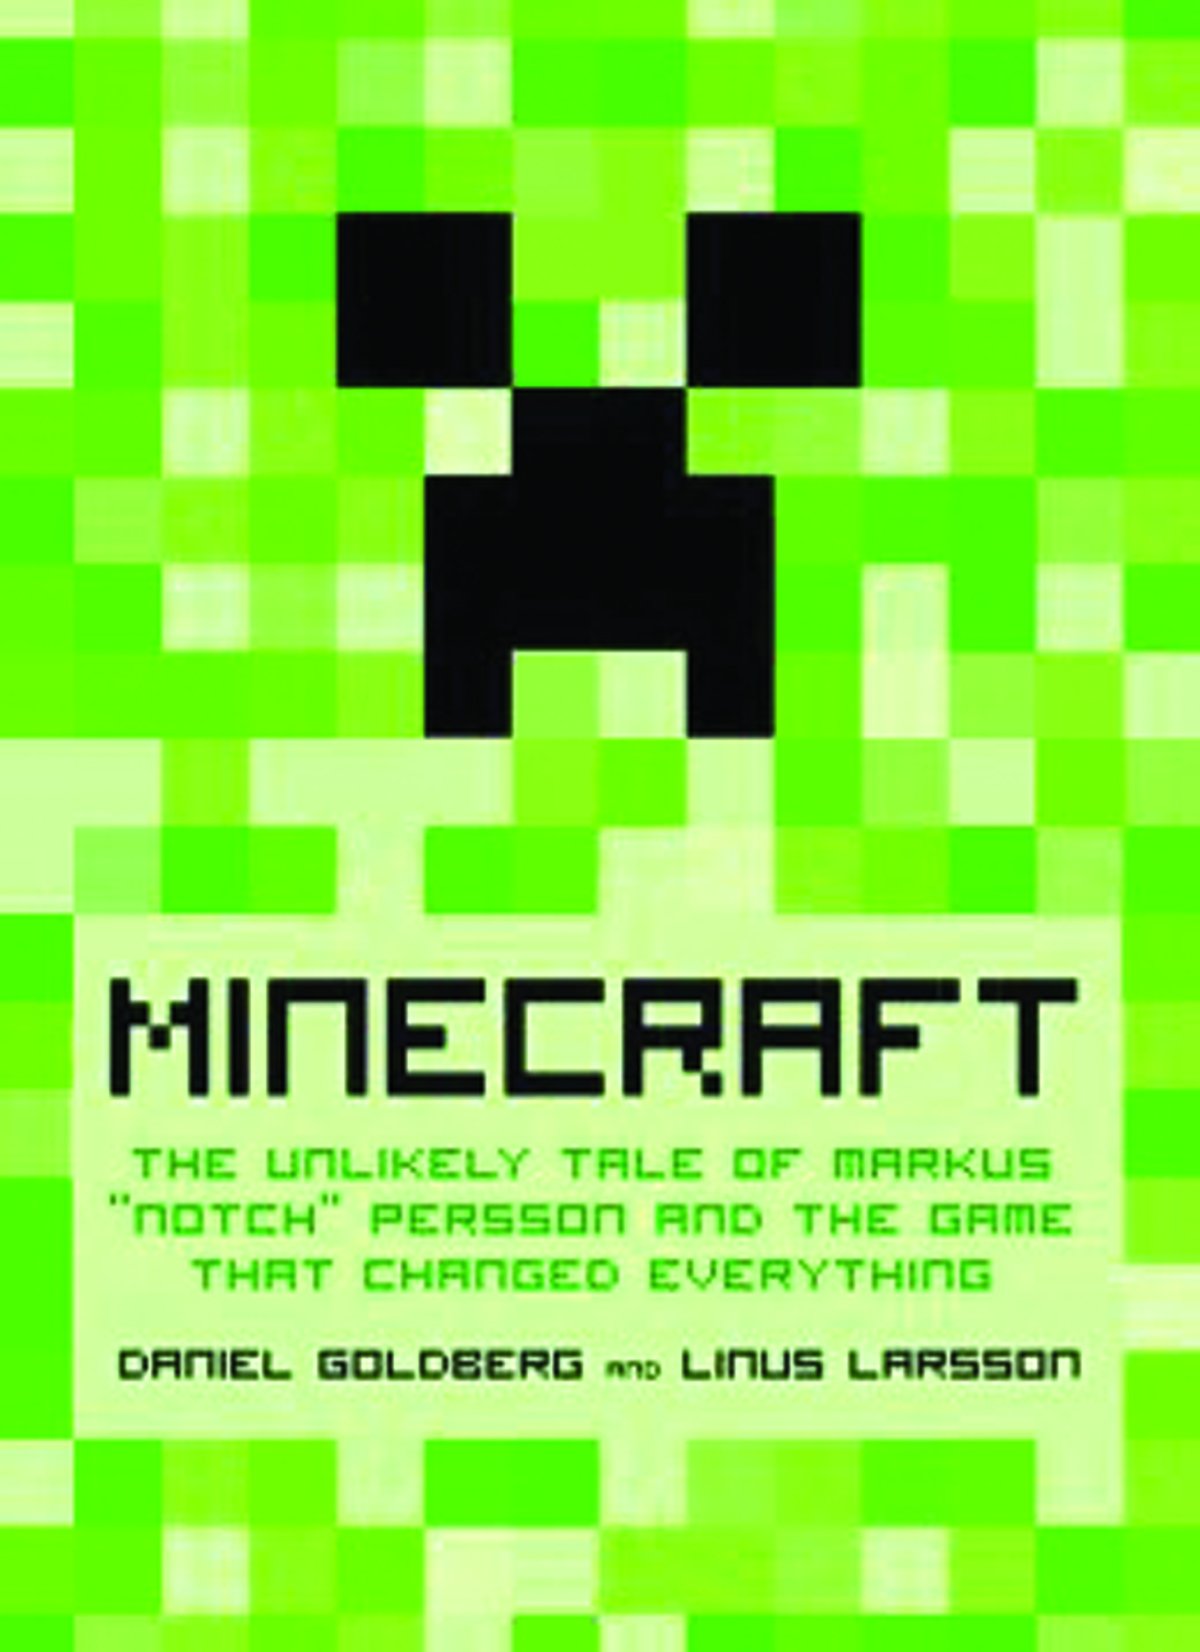 MINECRAFT THE GAME THAT CHANGED EVERYTHING HC